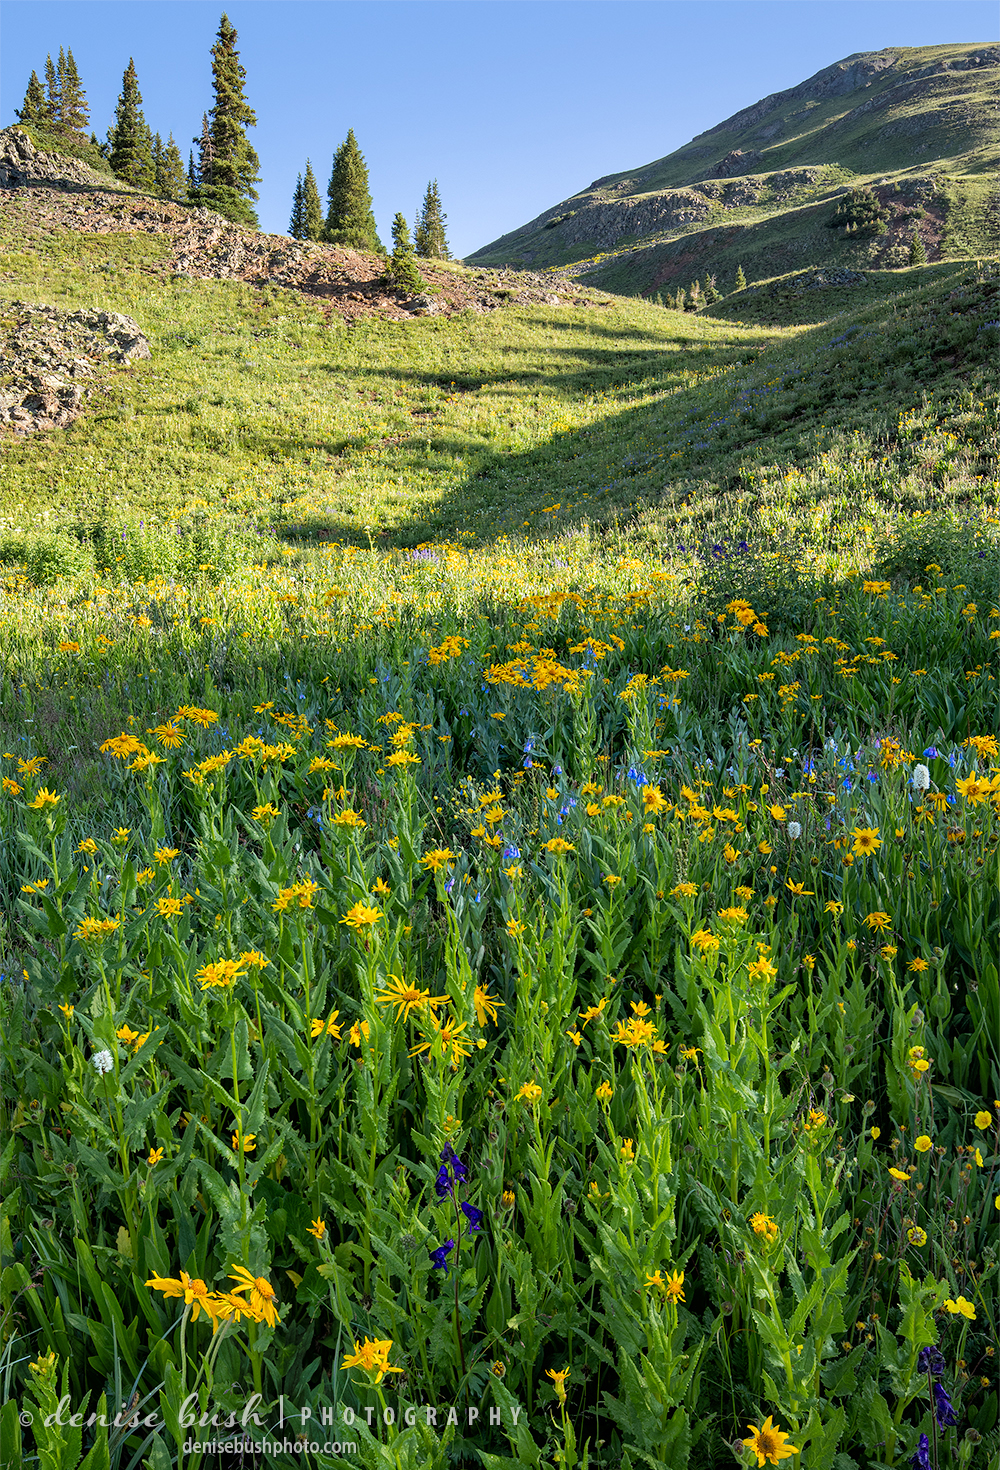 A pretty patch of Sneezeweed (Asteraceae) makes a bright statement in a Colorado alpine meadow in July.